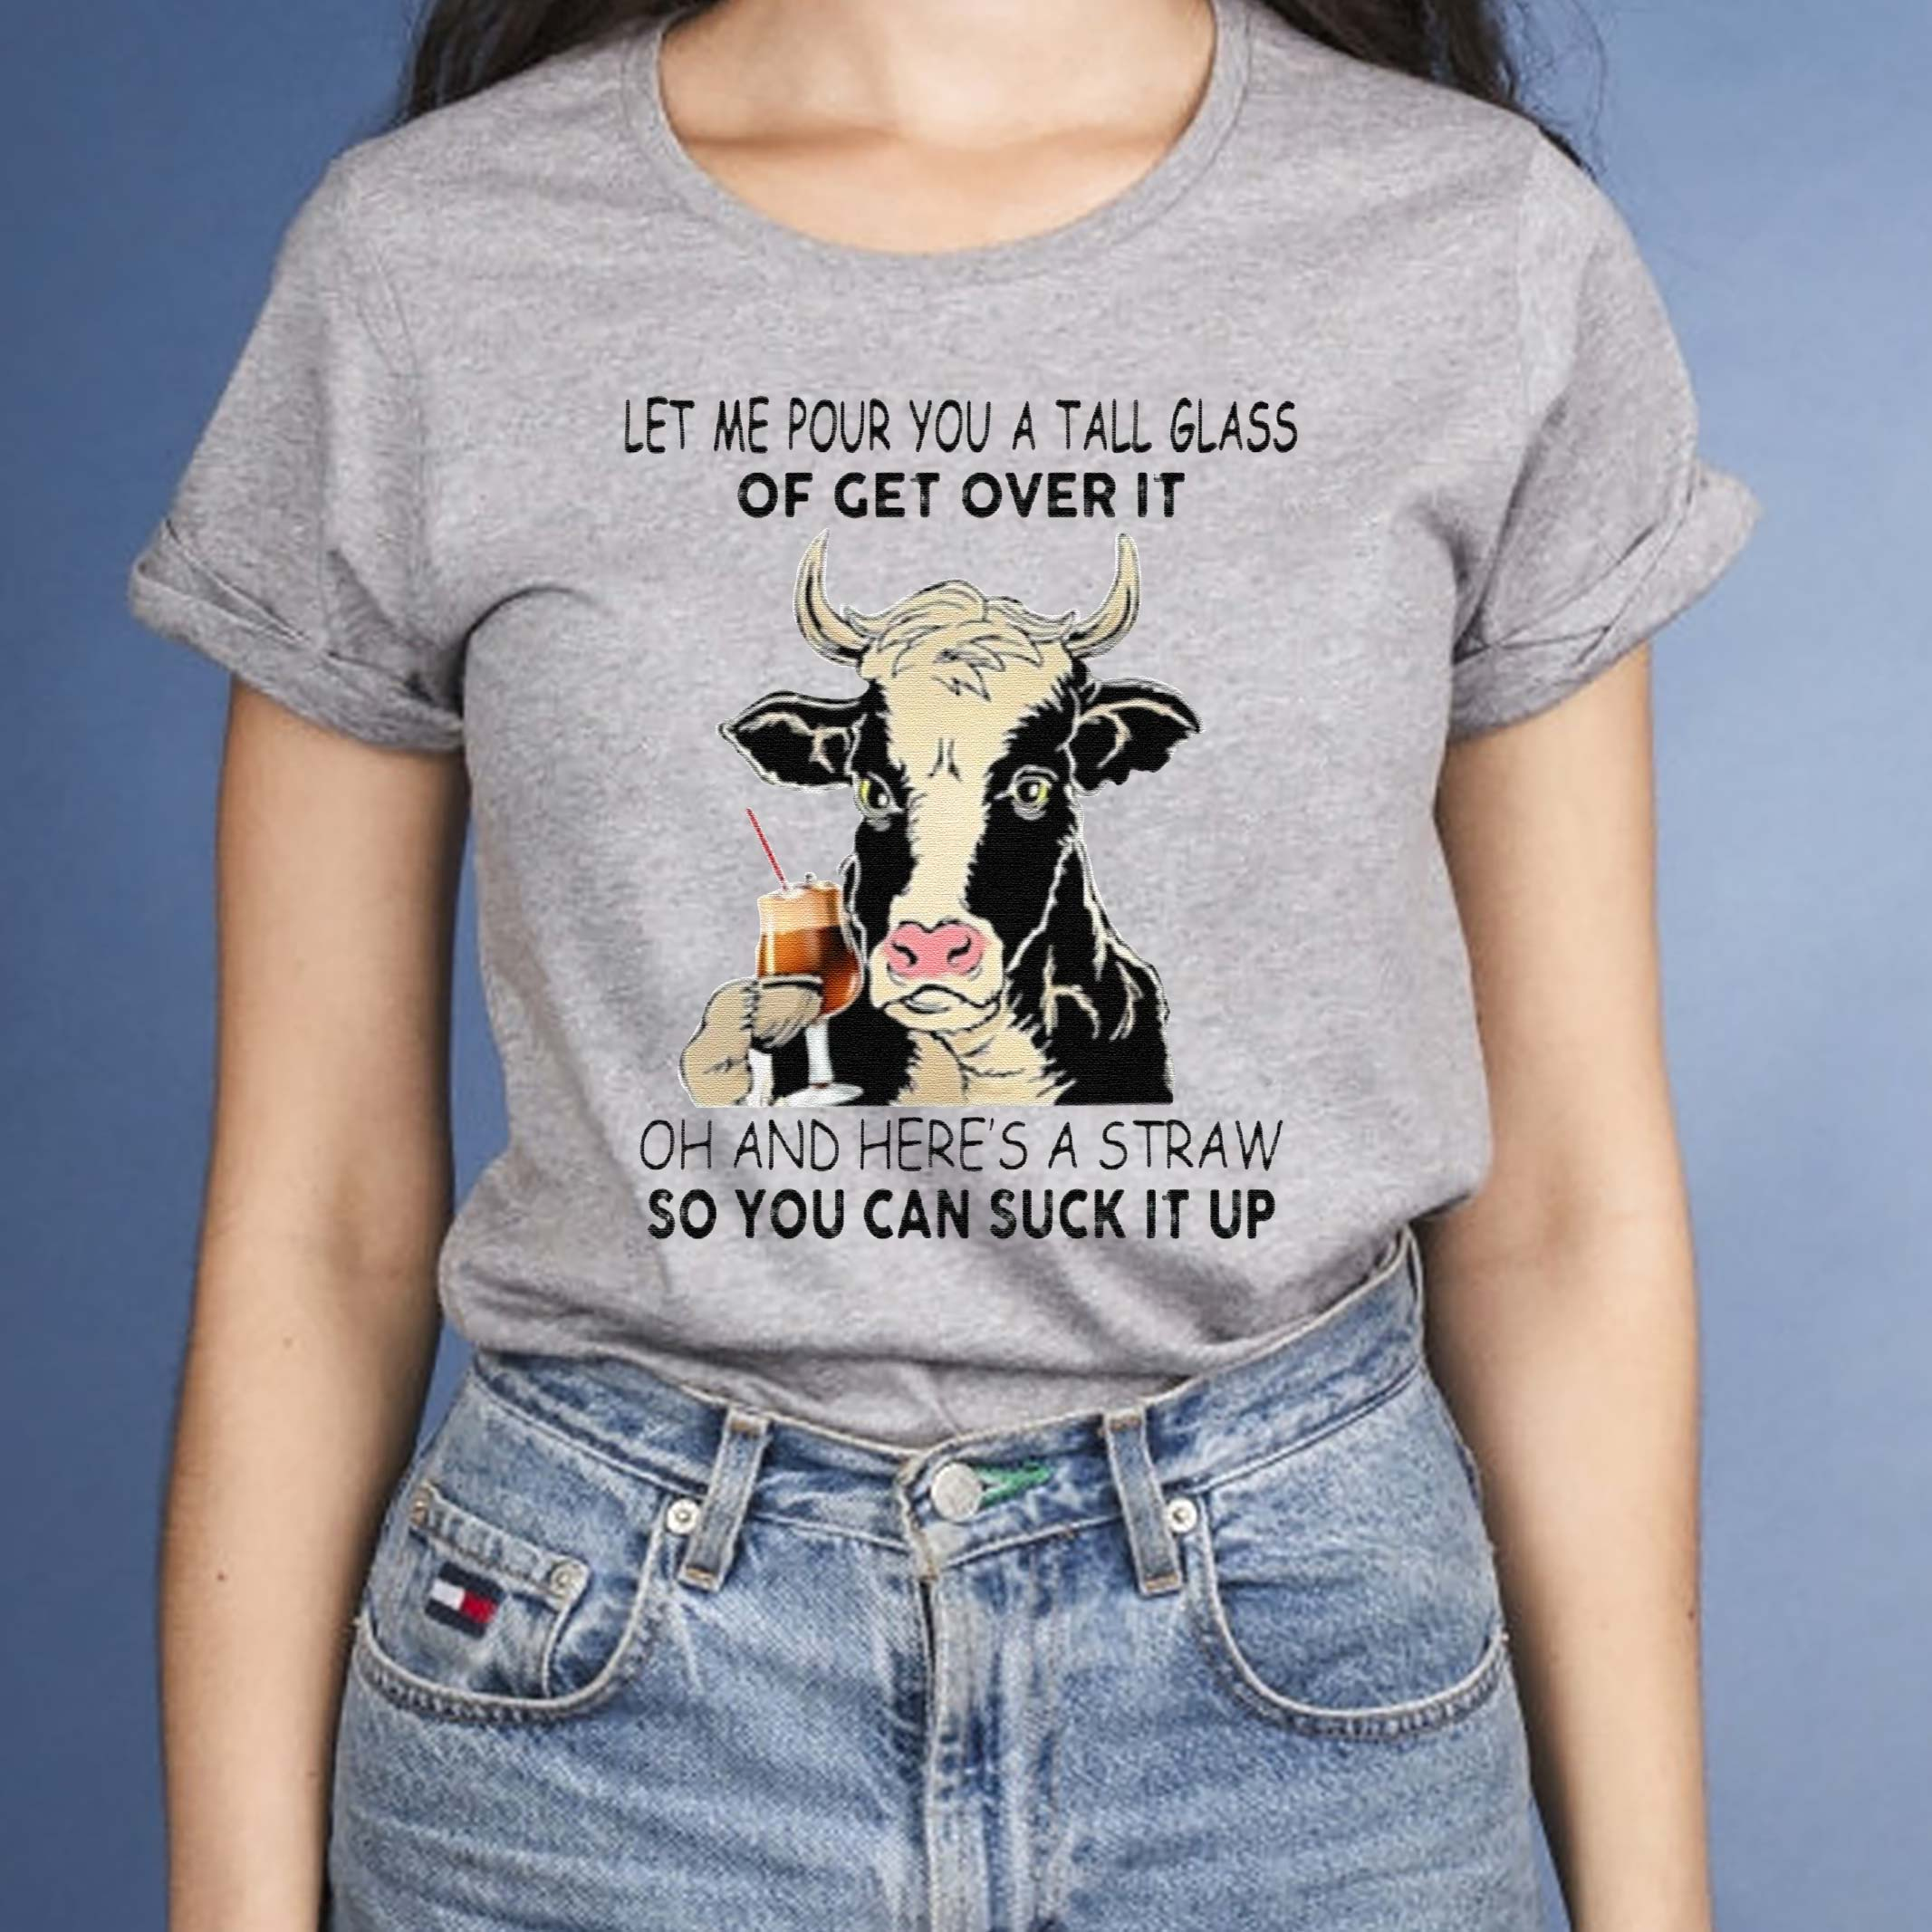 Let-Me-Pour-You-A-Tall-Glass-Of-Get-Over-It-Oh-And-Here's-A-Straw-So-You-Can-Suck-It-Up-TShirts